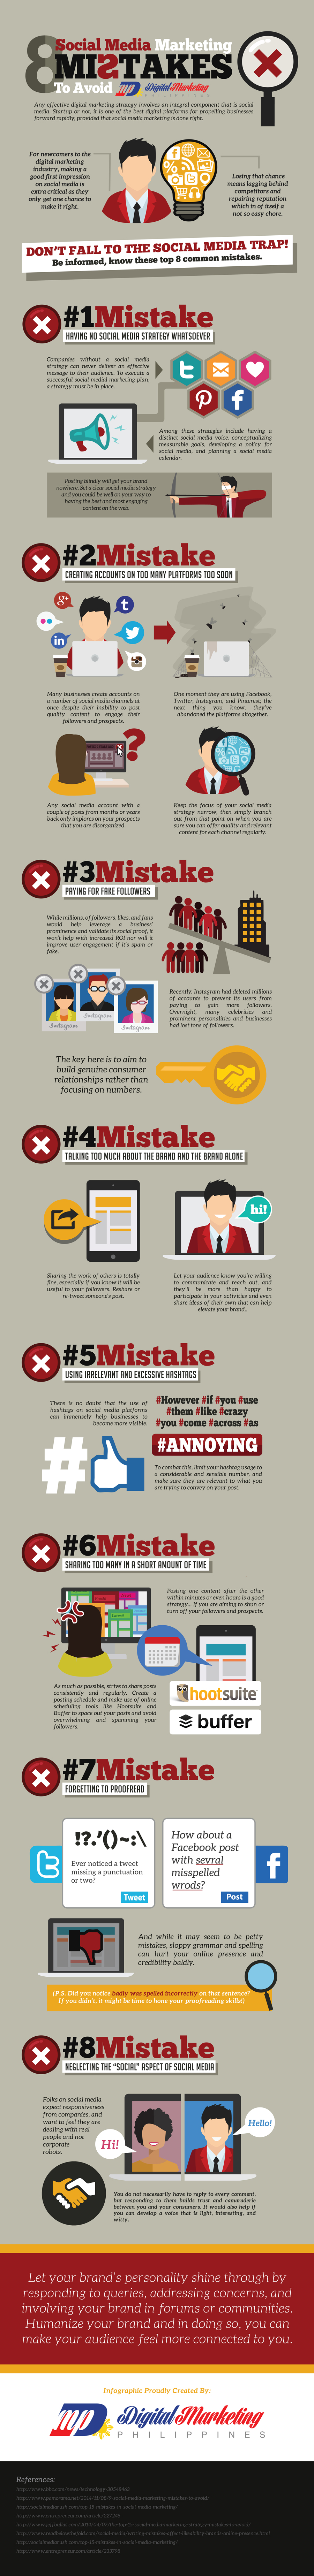 social media marketing mistake